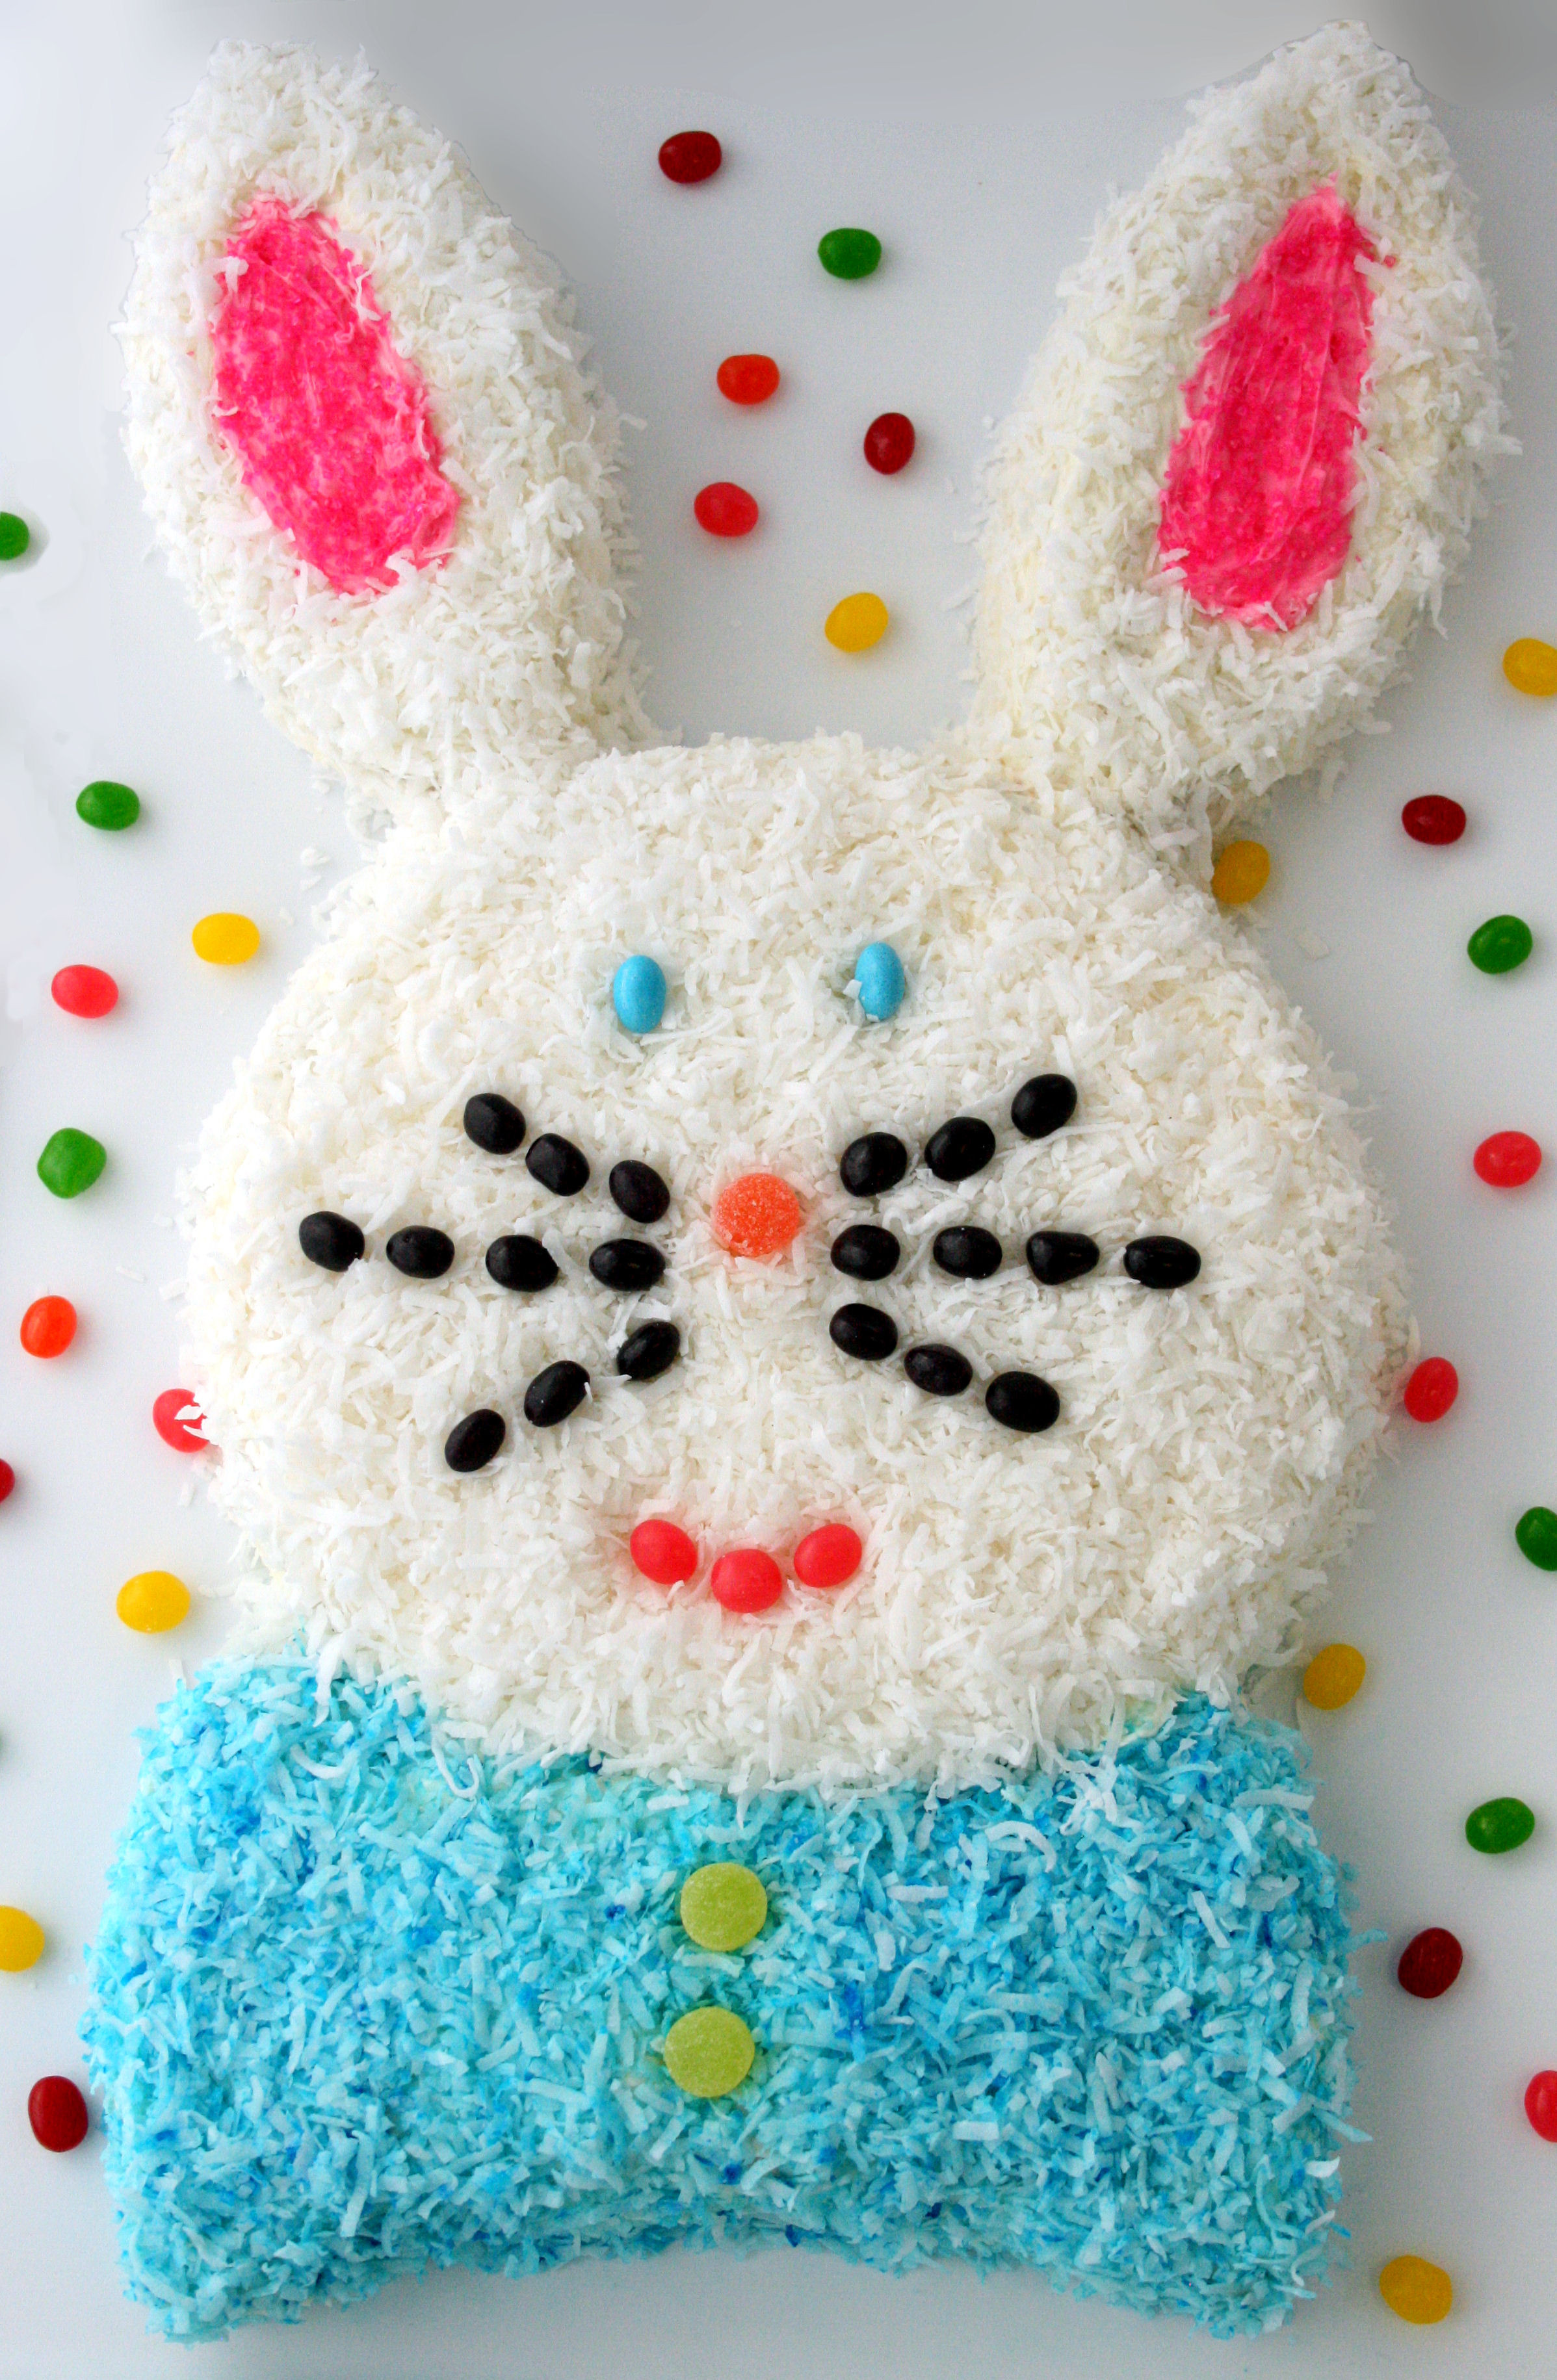 Easter Bunny Cake Recipe the Best Easter Bunny Cakes – Decoration Ideas